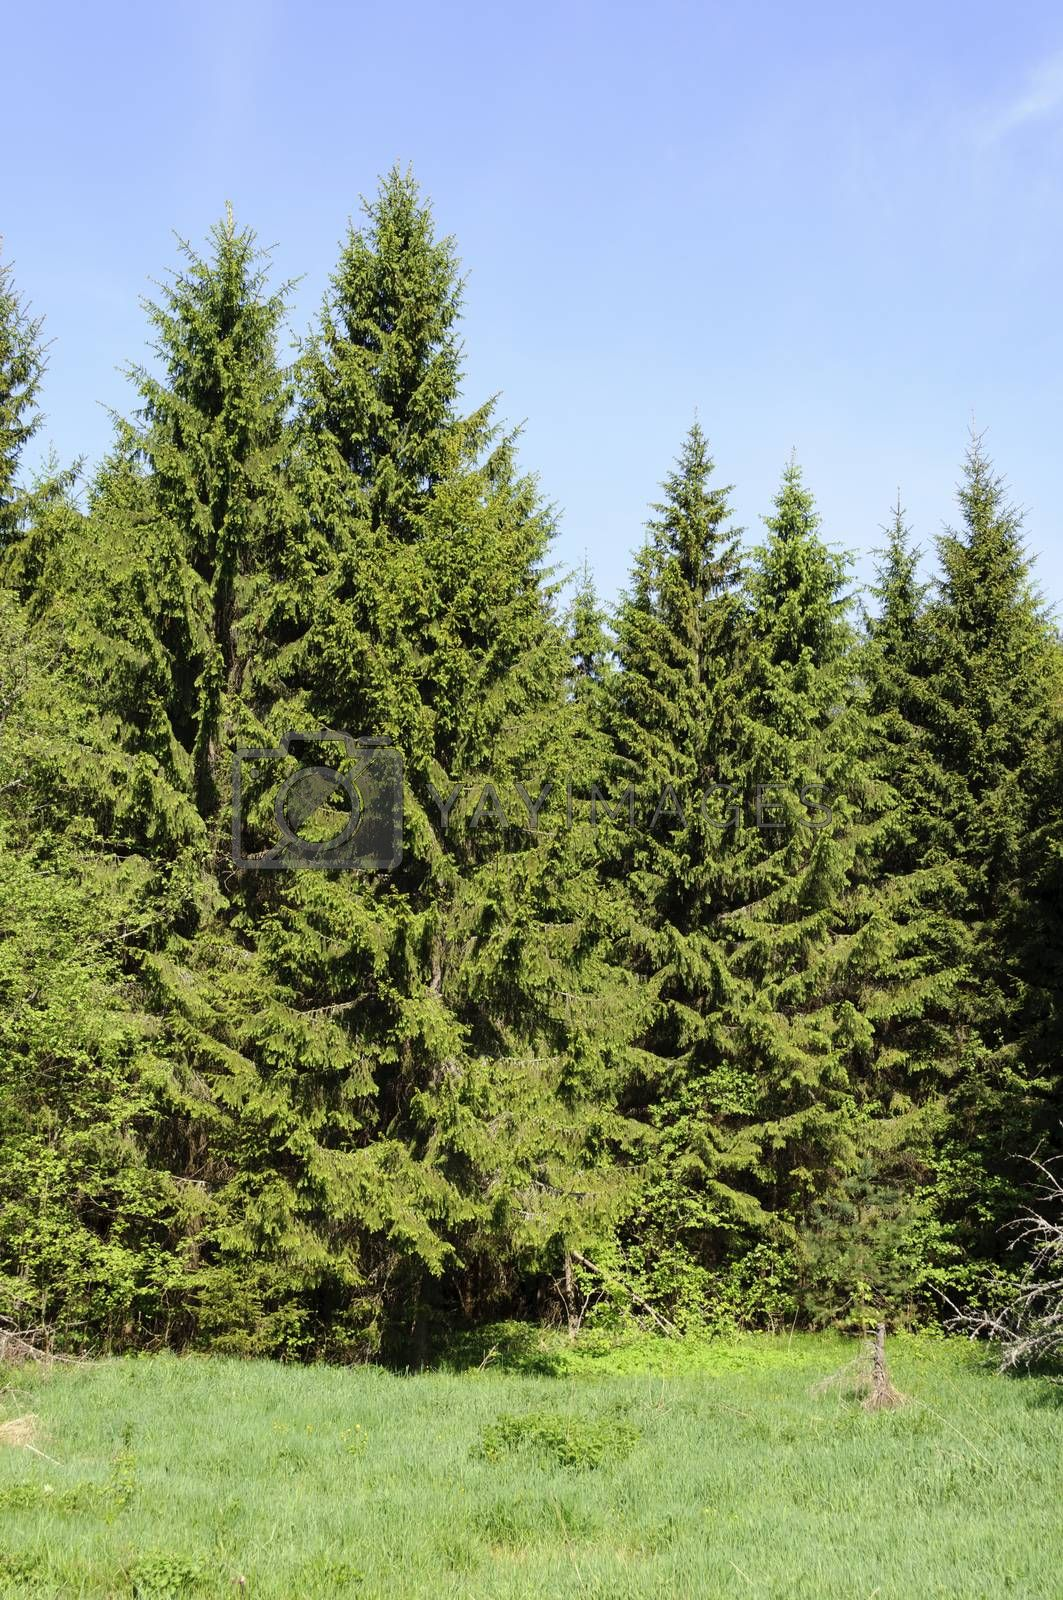 Spruce forest in the morning, spring time